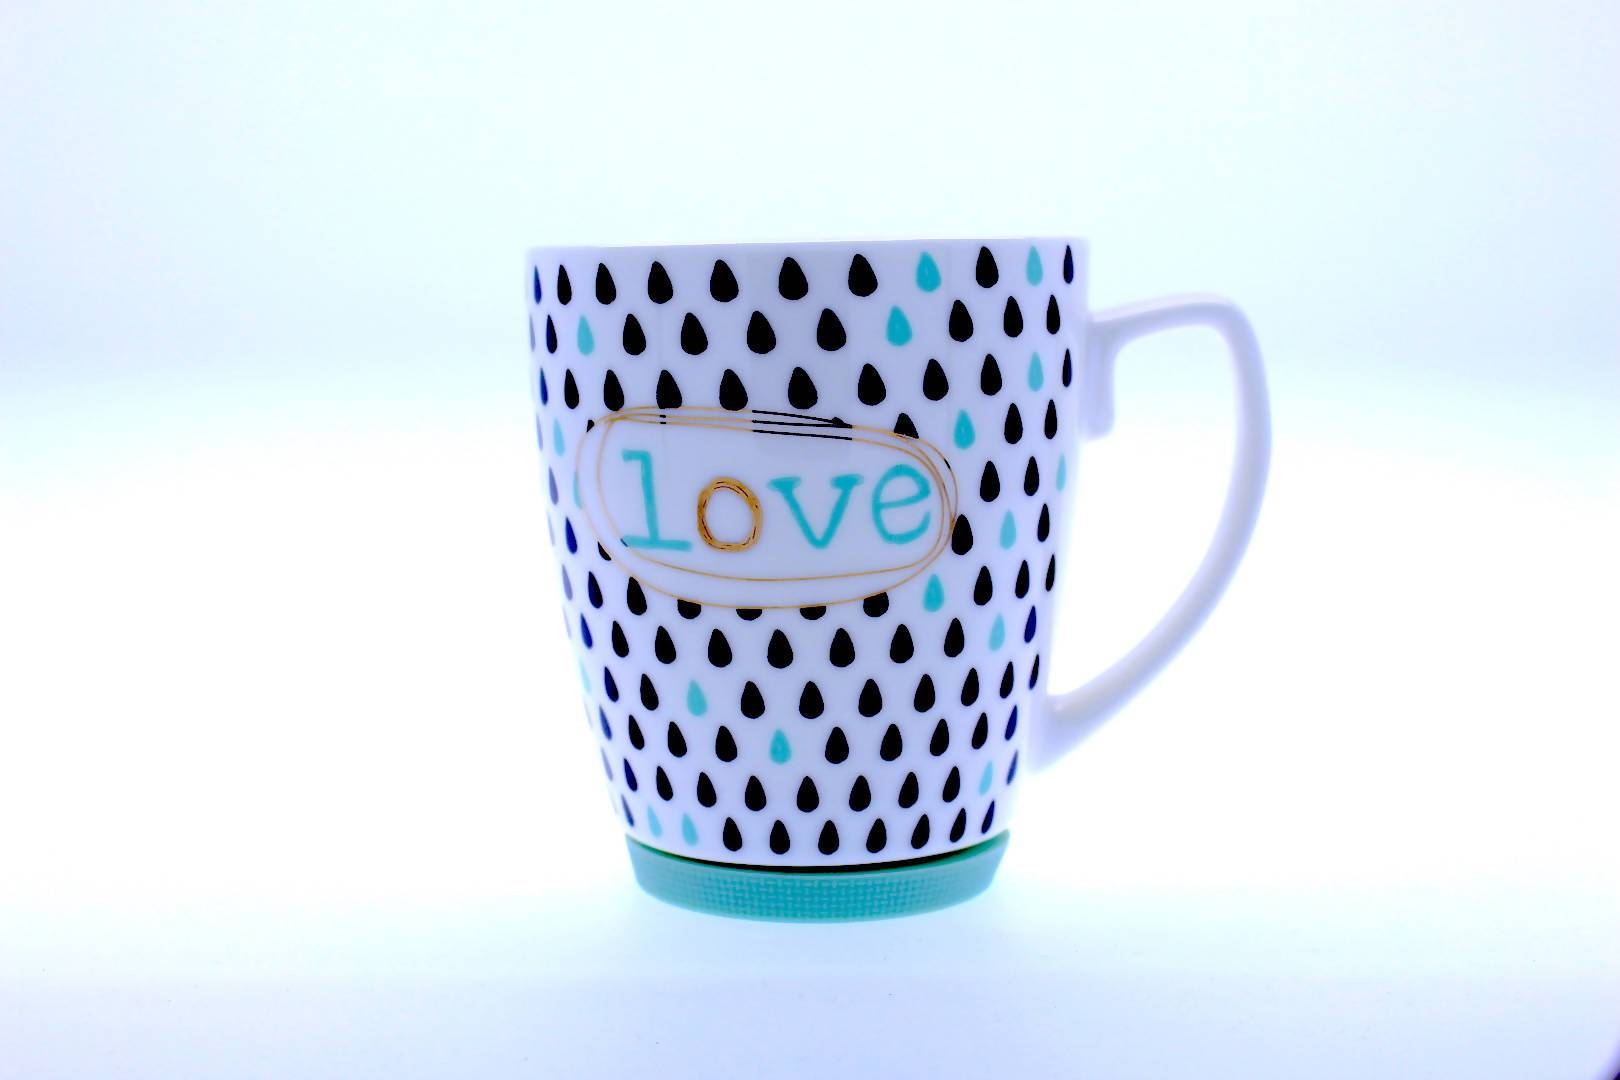 Royal Spade - Gold Decal With Love 2 Mug - Mugs - The Planet Collection - Naiise